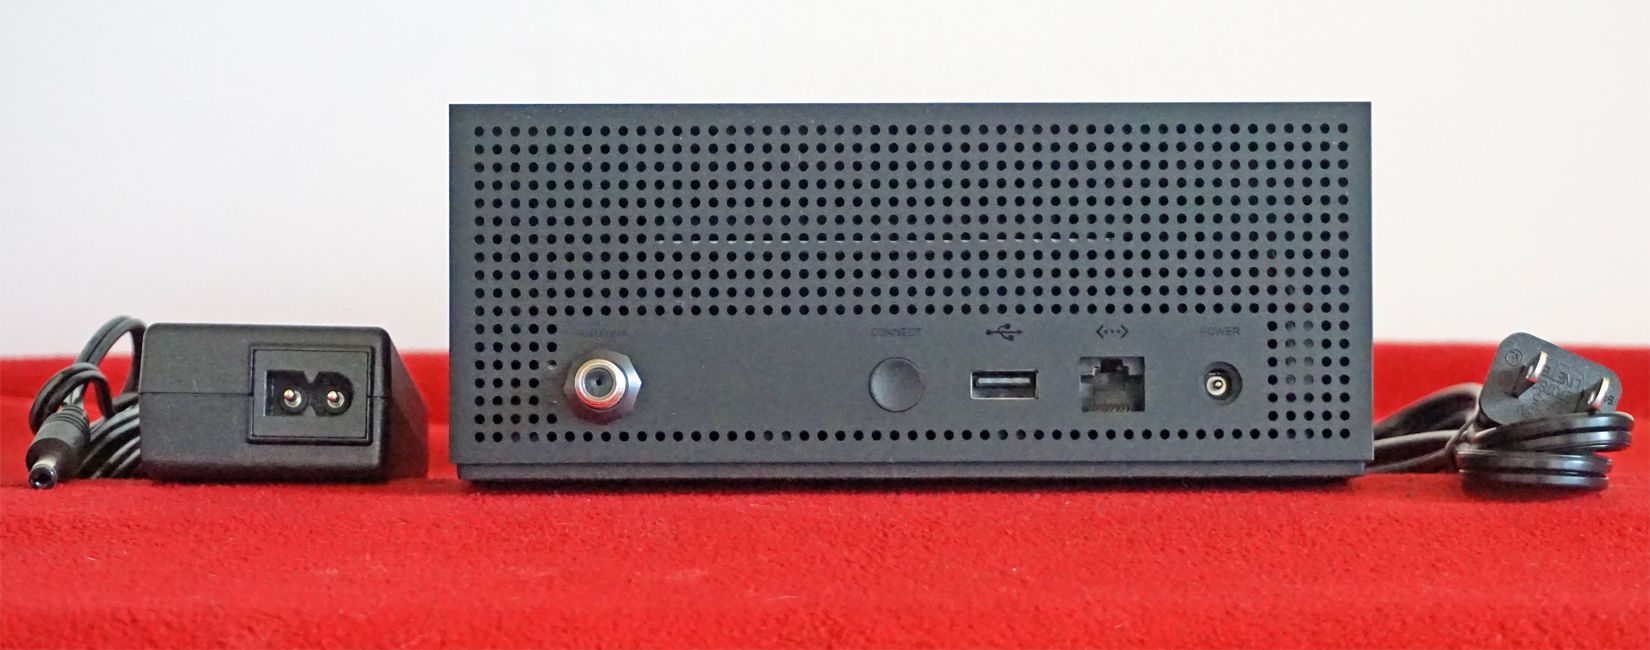 How to Set Up And Use Fire TV Recast